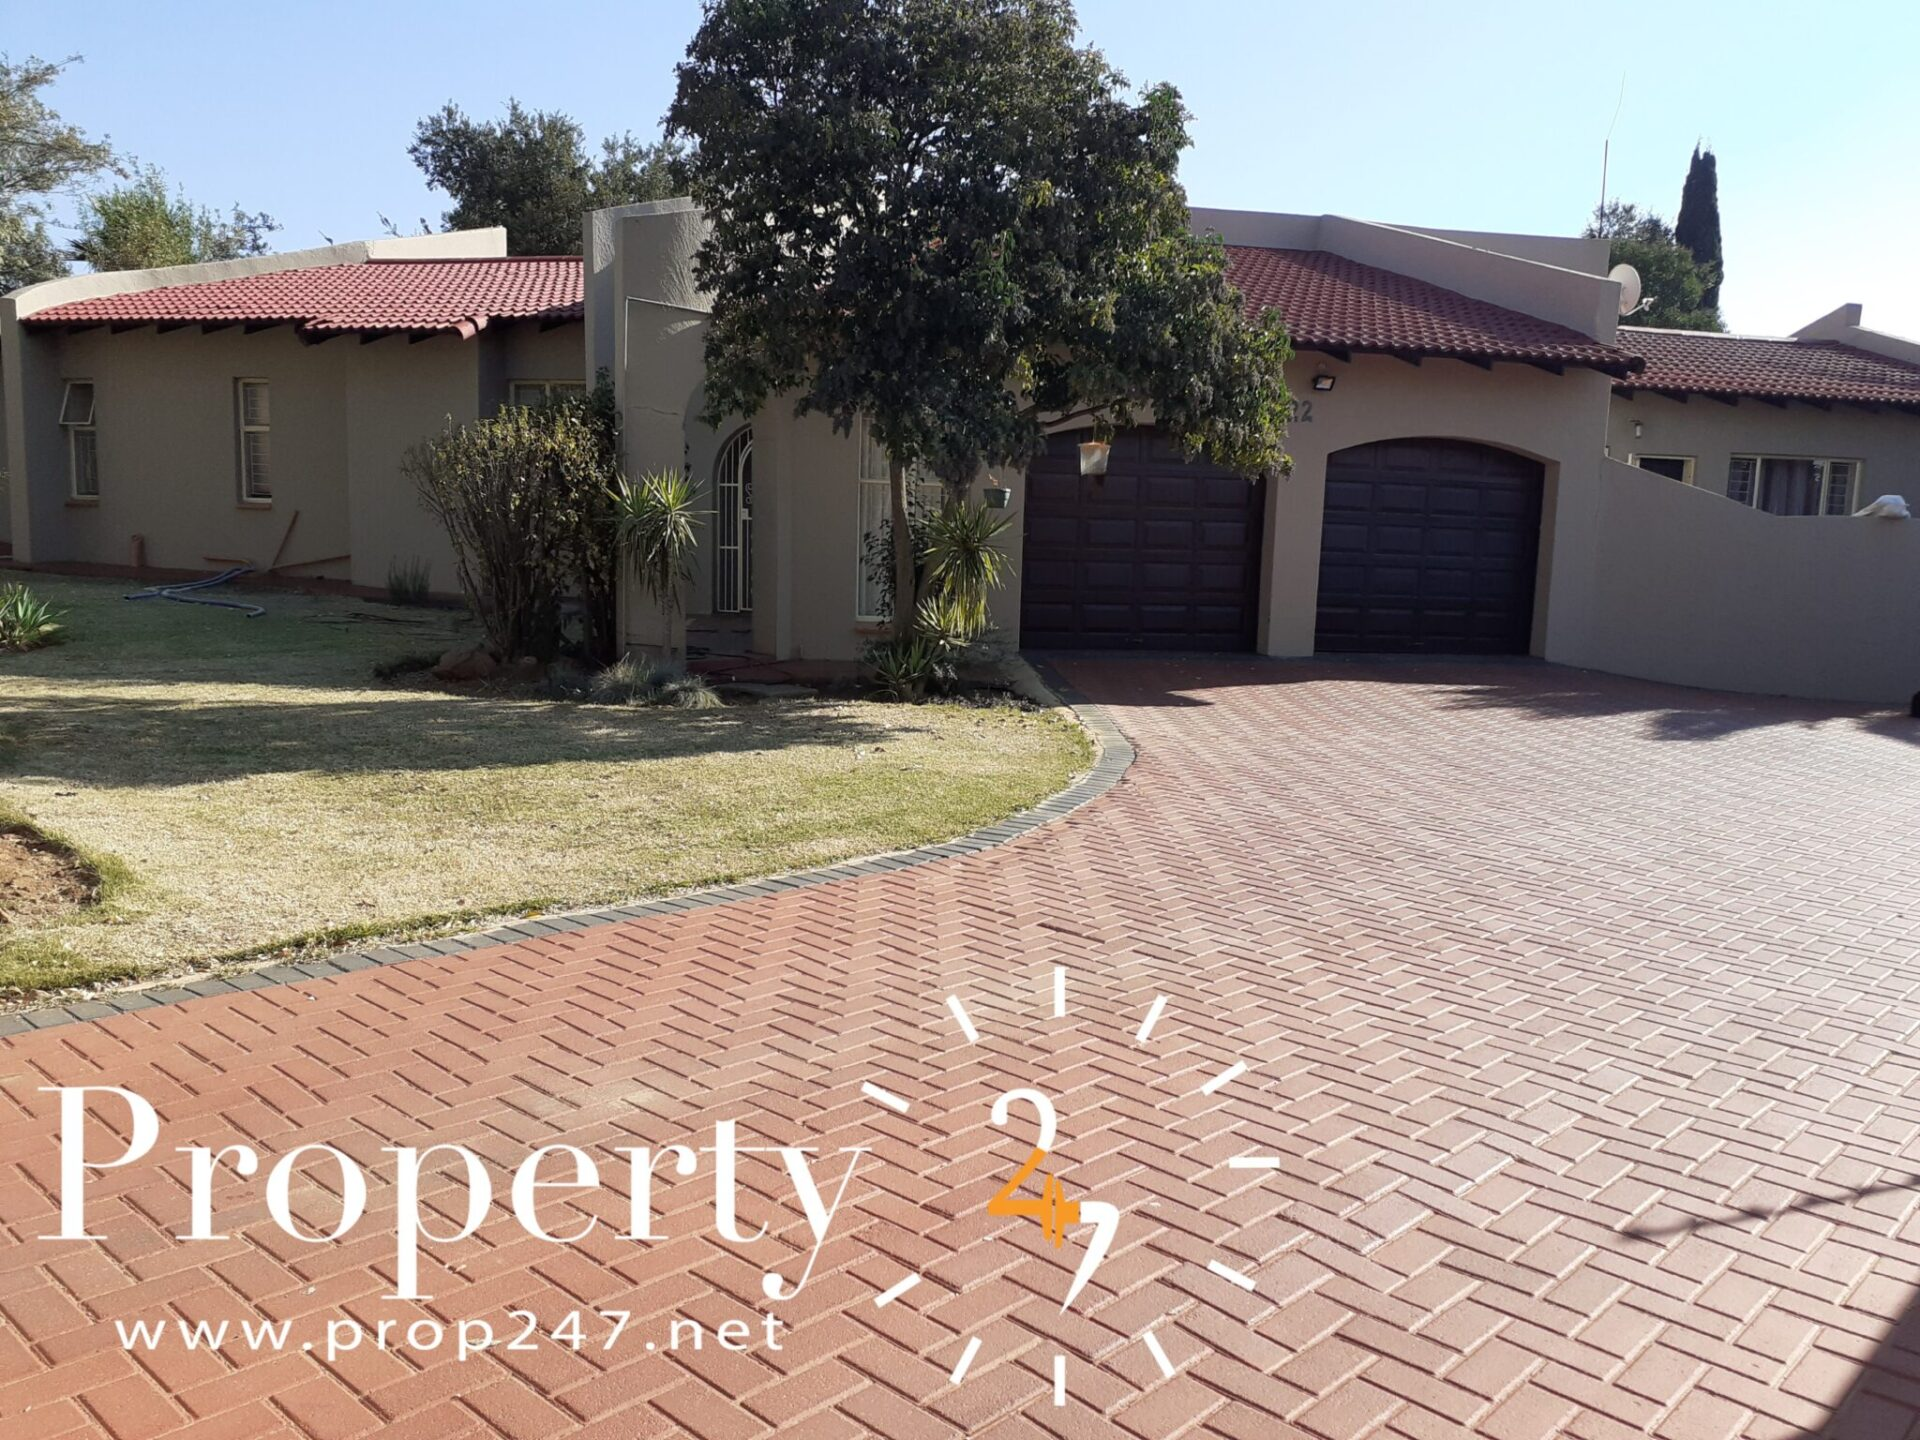 4 BEDROOM HOUSE WITH A POOL FOR SALE IN FOCHVILLE